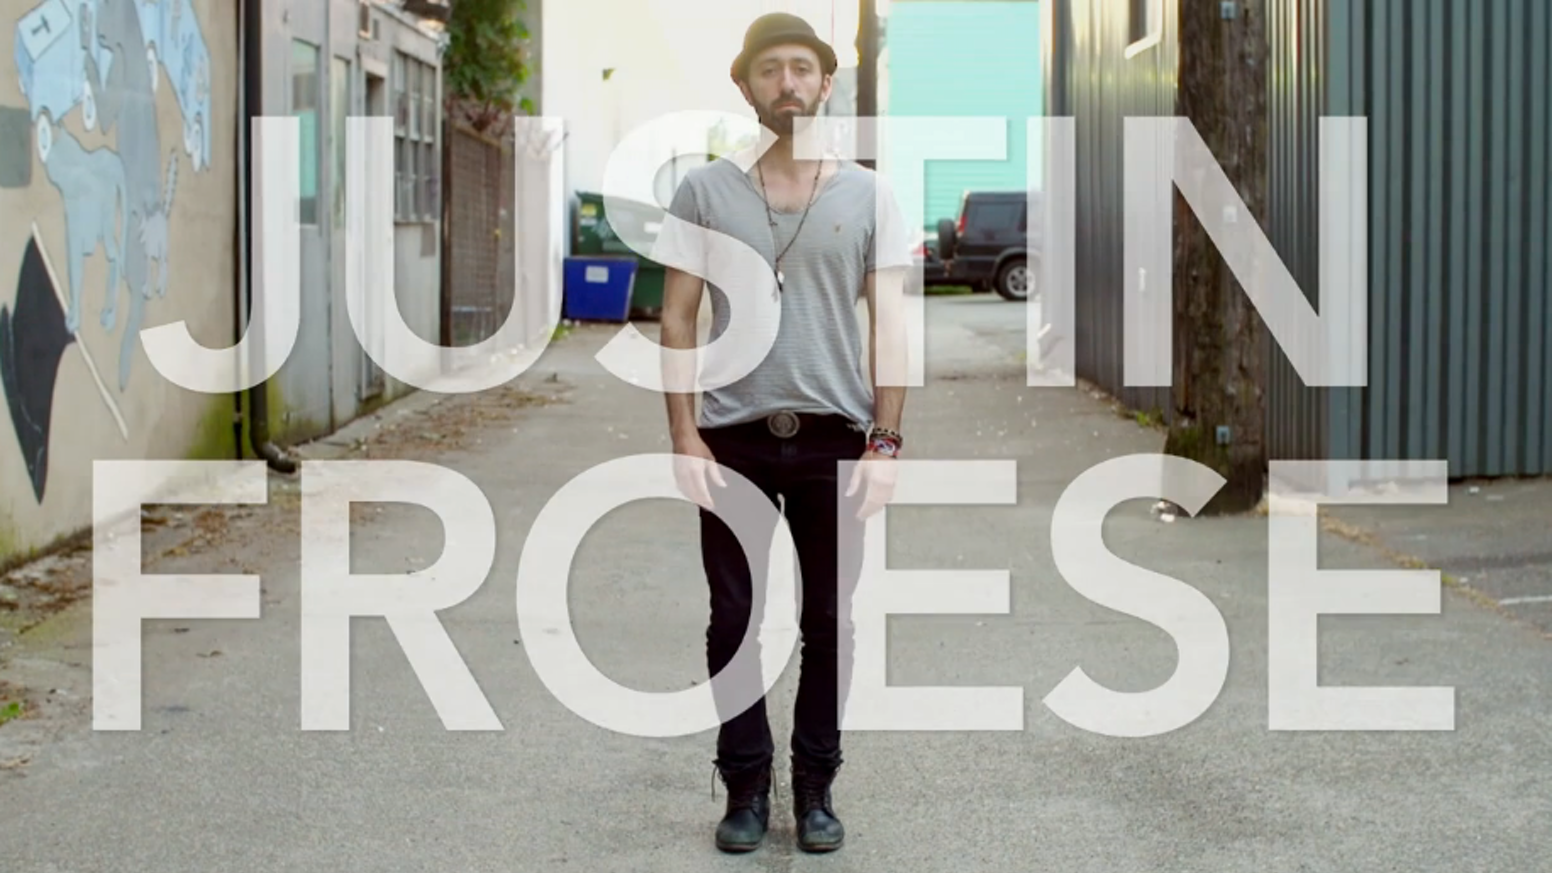 Help Justin Froese fund his best FULL LENGTH ALBUM yet! by ...